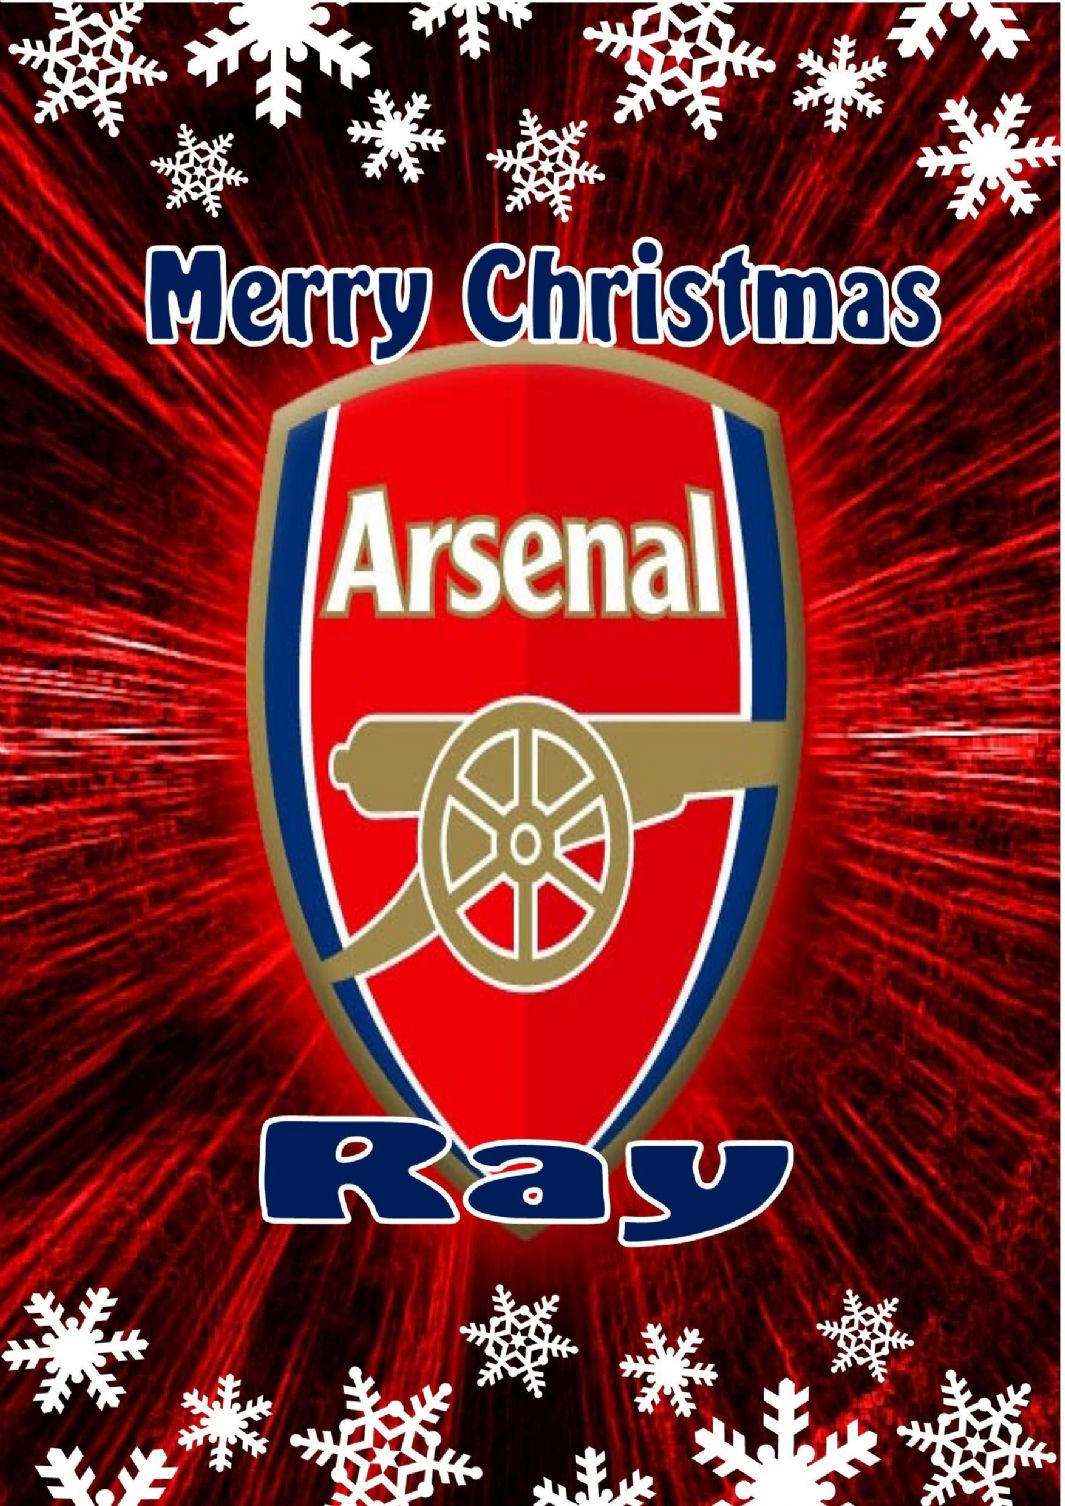 Personalised Arsenal Fc Christmas Card P on Zipper Tooth